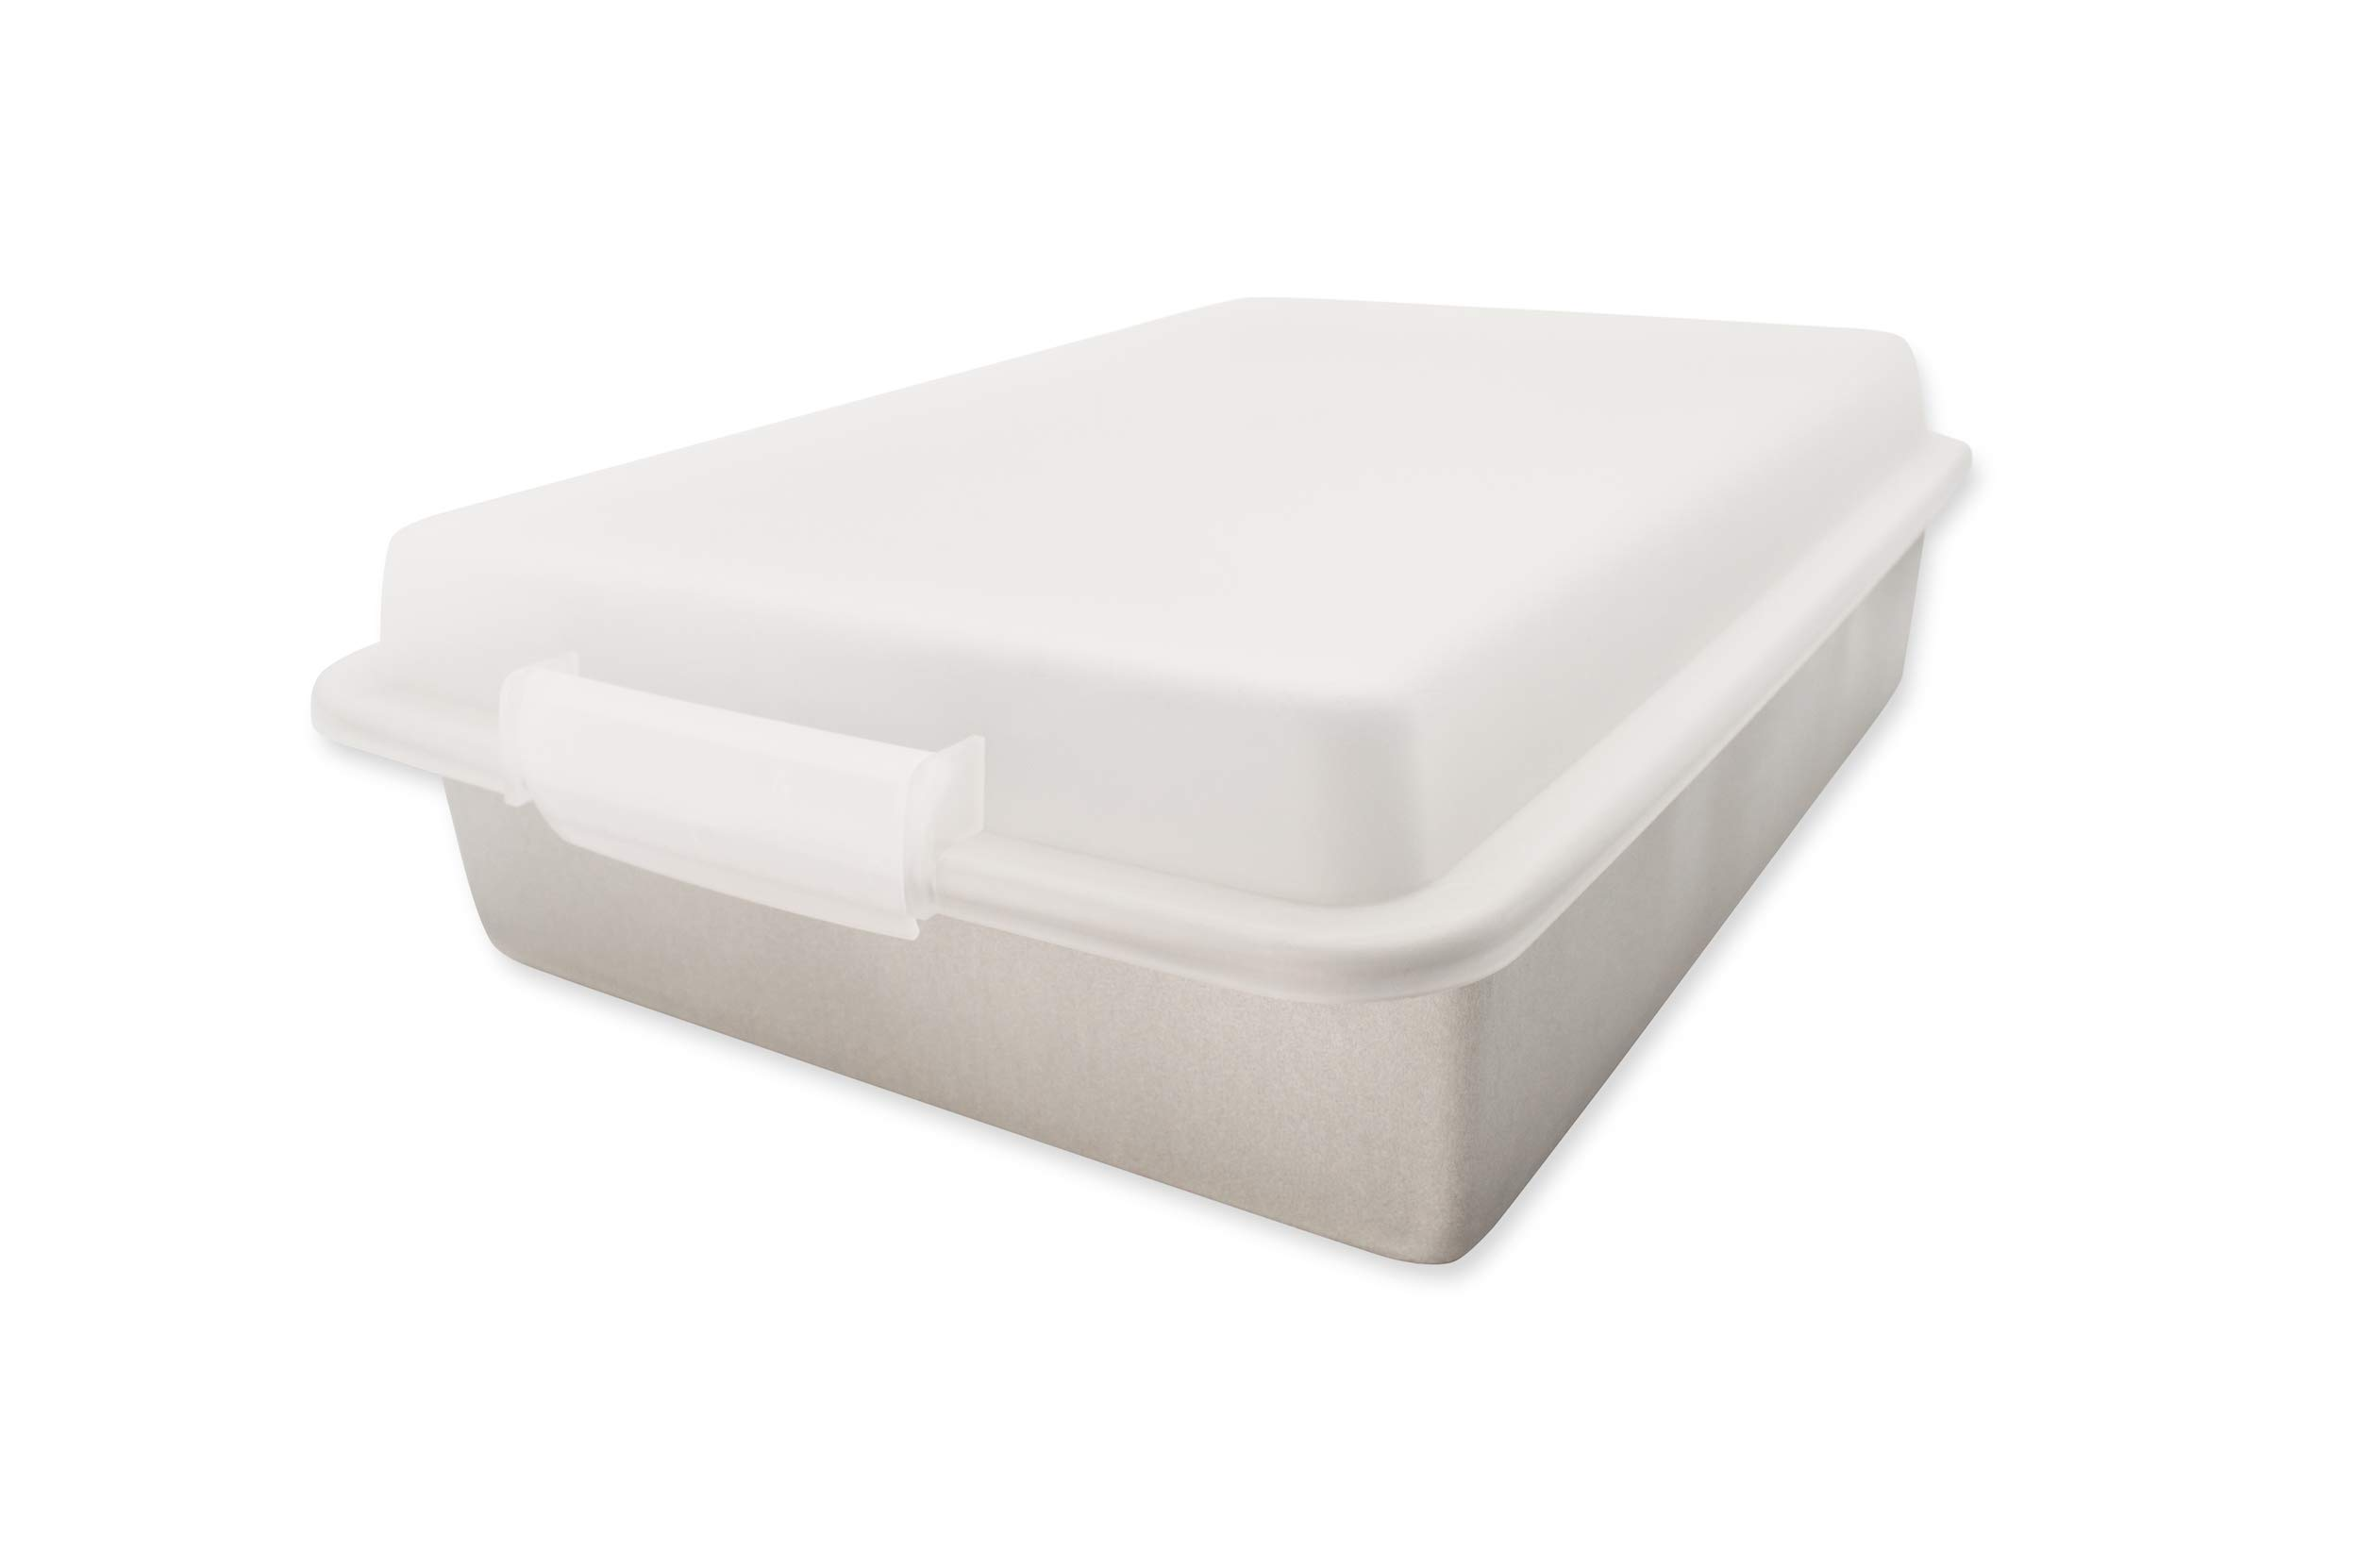 USA Pan 1117RCLD-ST-1 Bakeware Nonstick Rectangular Pan with Lid, 9x13-Inches by USA Pan (Image #1)